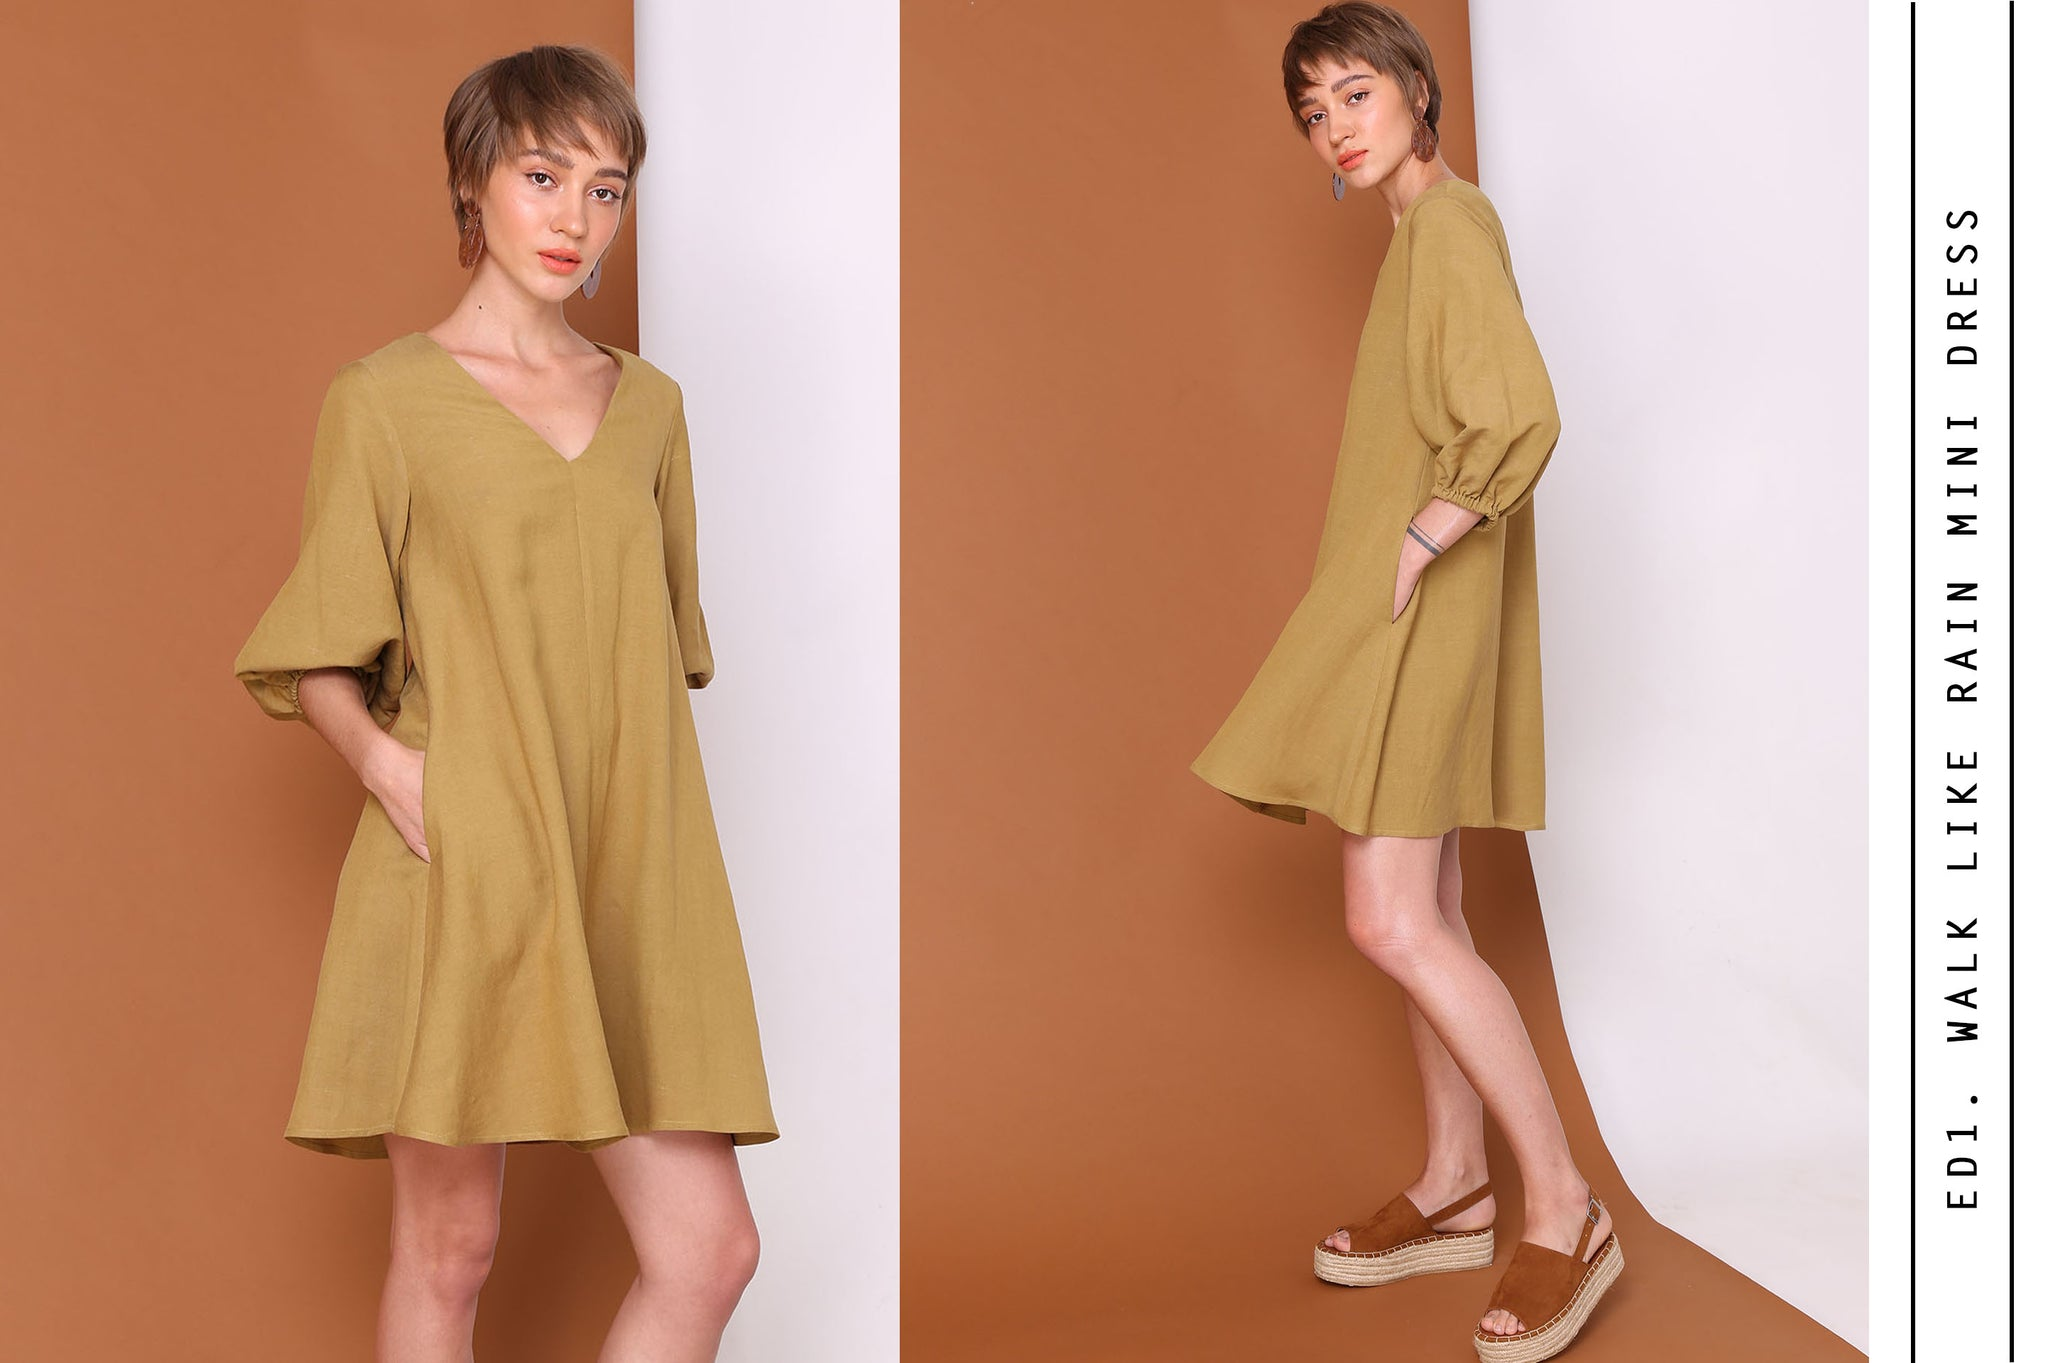 WALKS LIKE RAIN Mini Swing Dress In Olive Linen Cotton